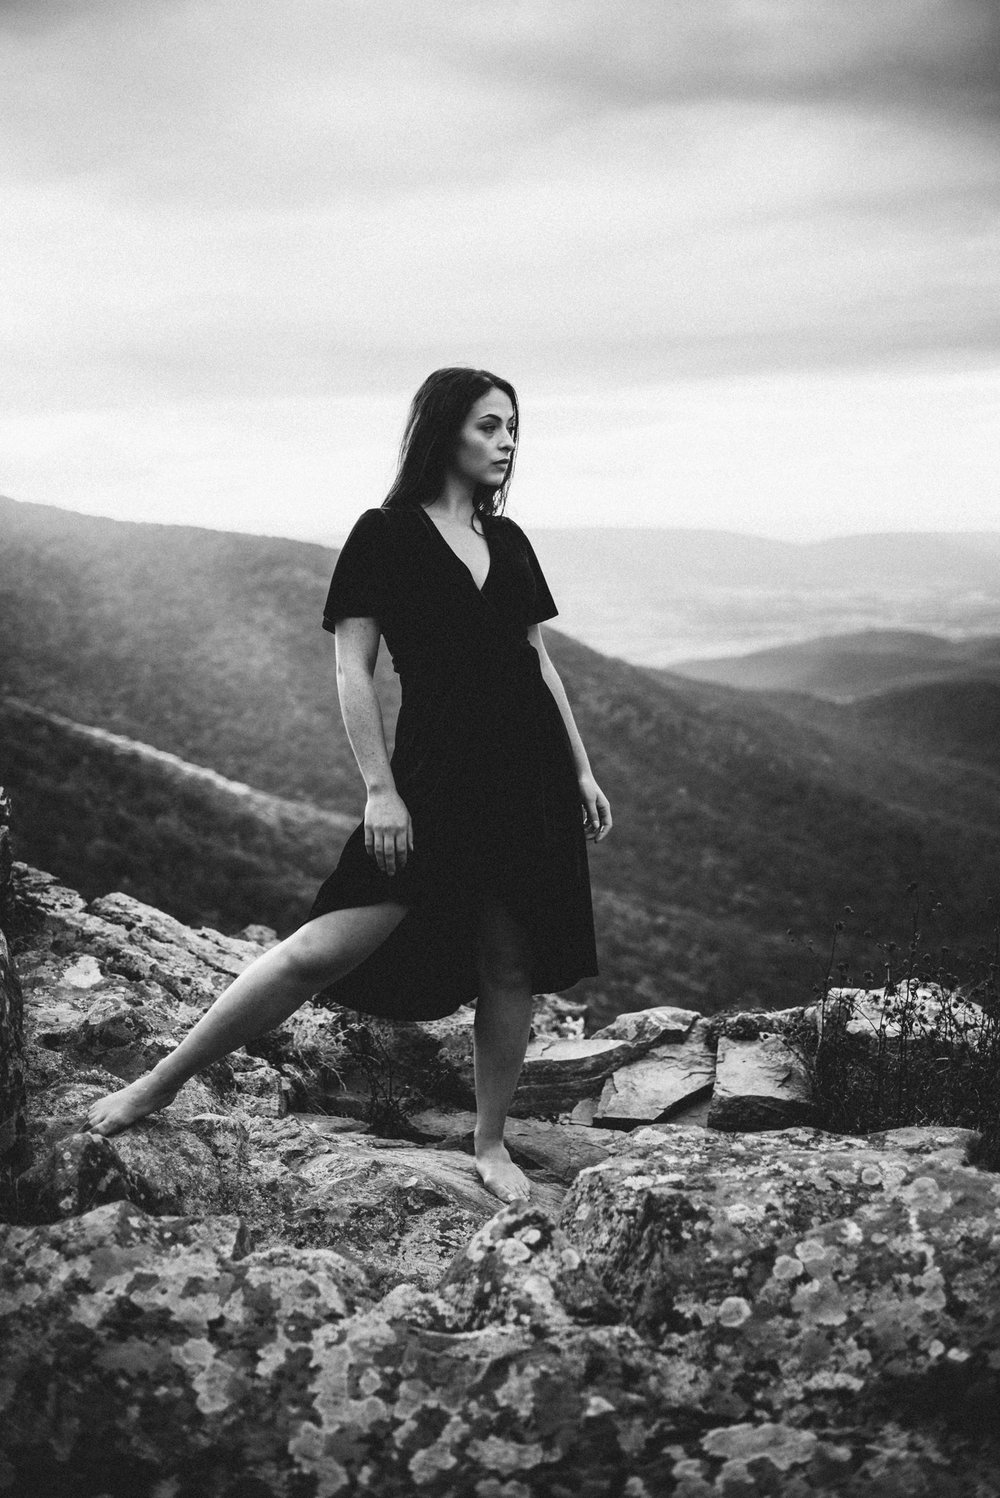 Megan_Shenandoah_National_Park_Windy_Romantic_Portraits_88.JPG